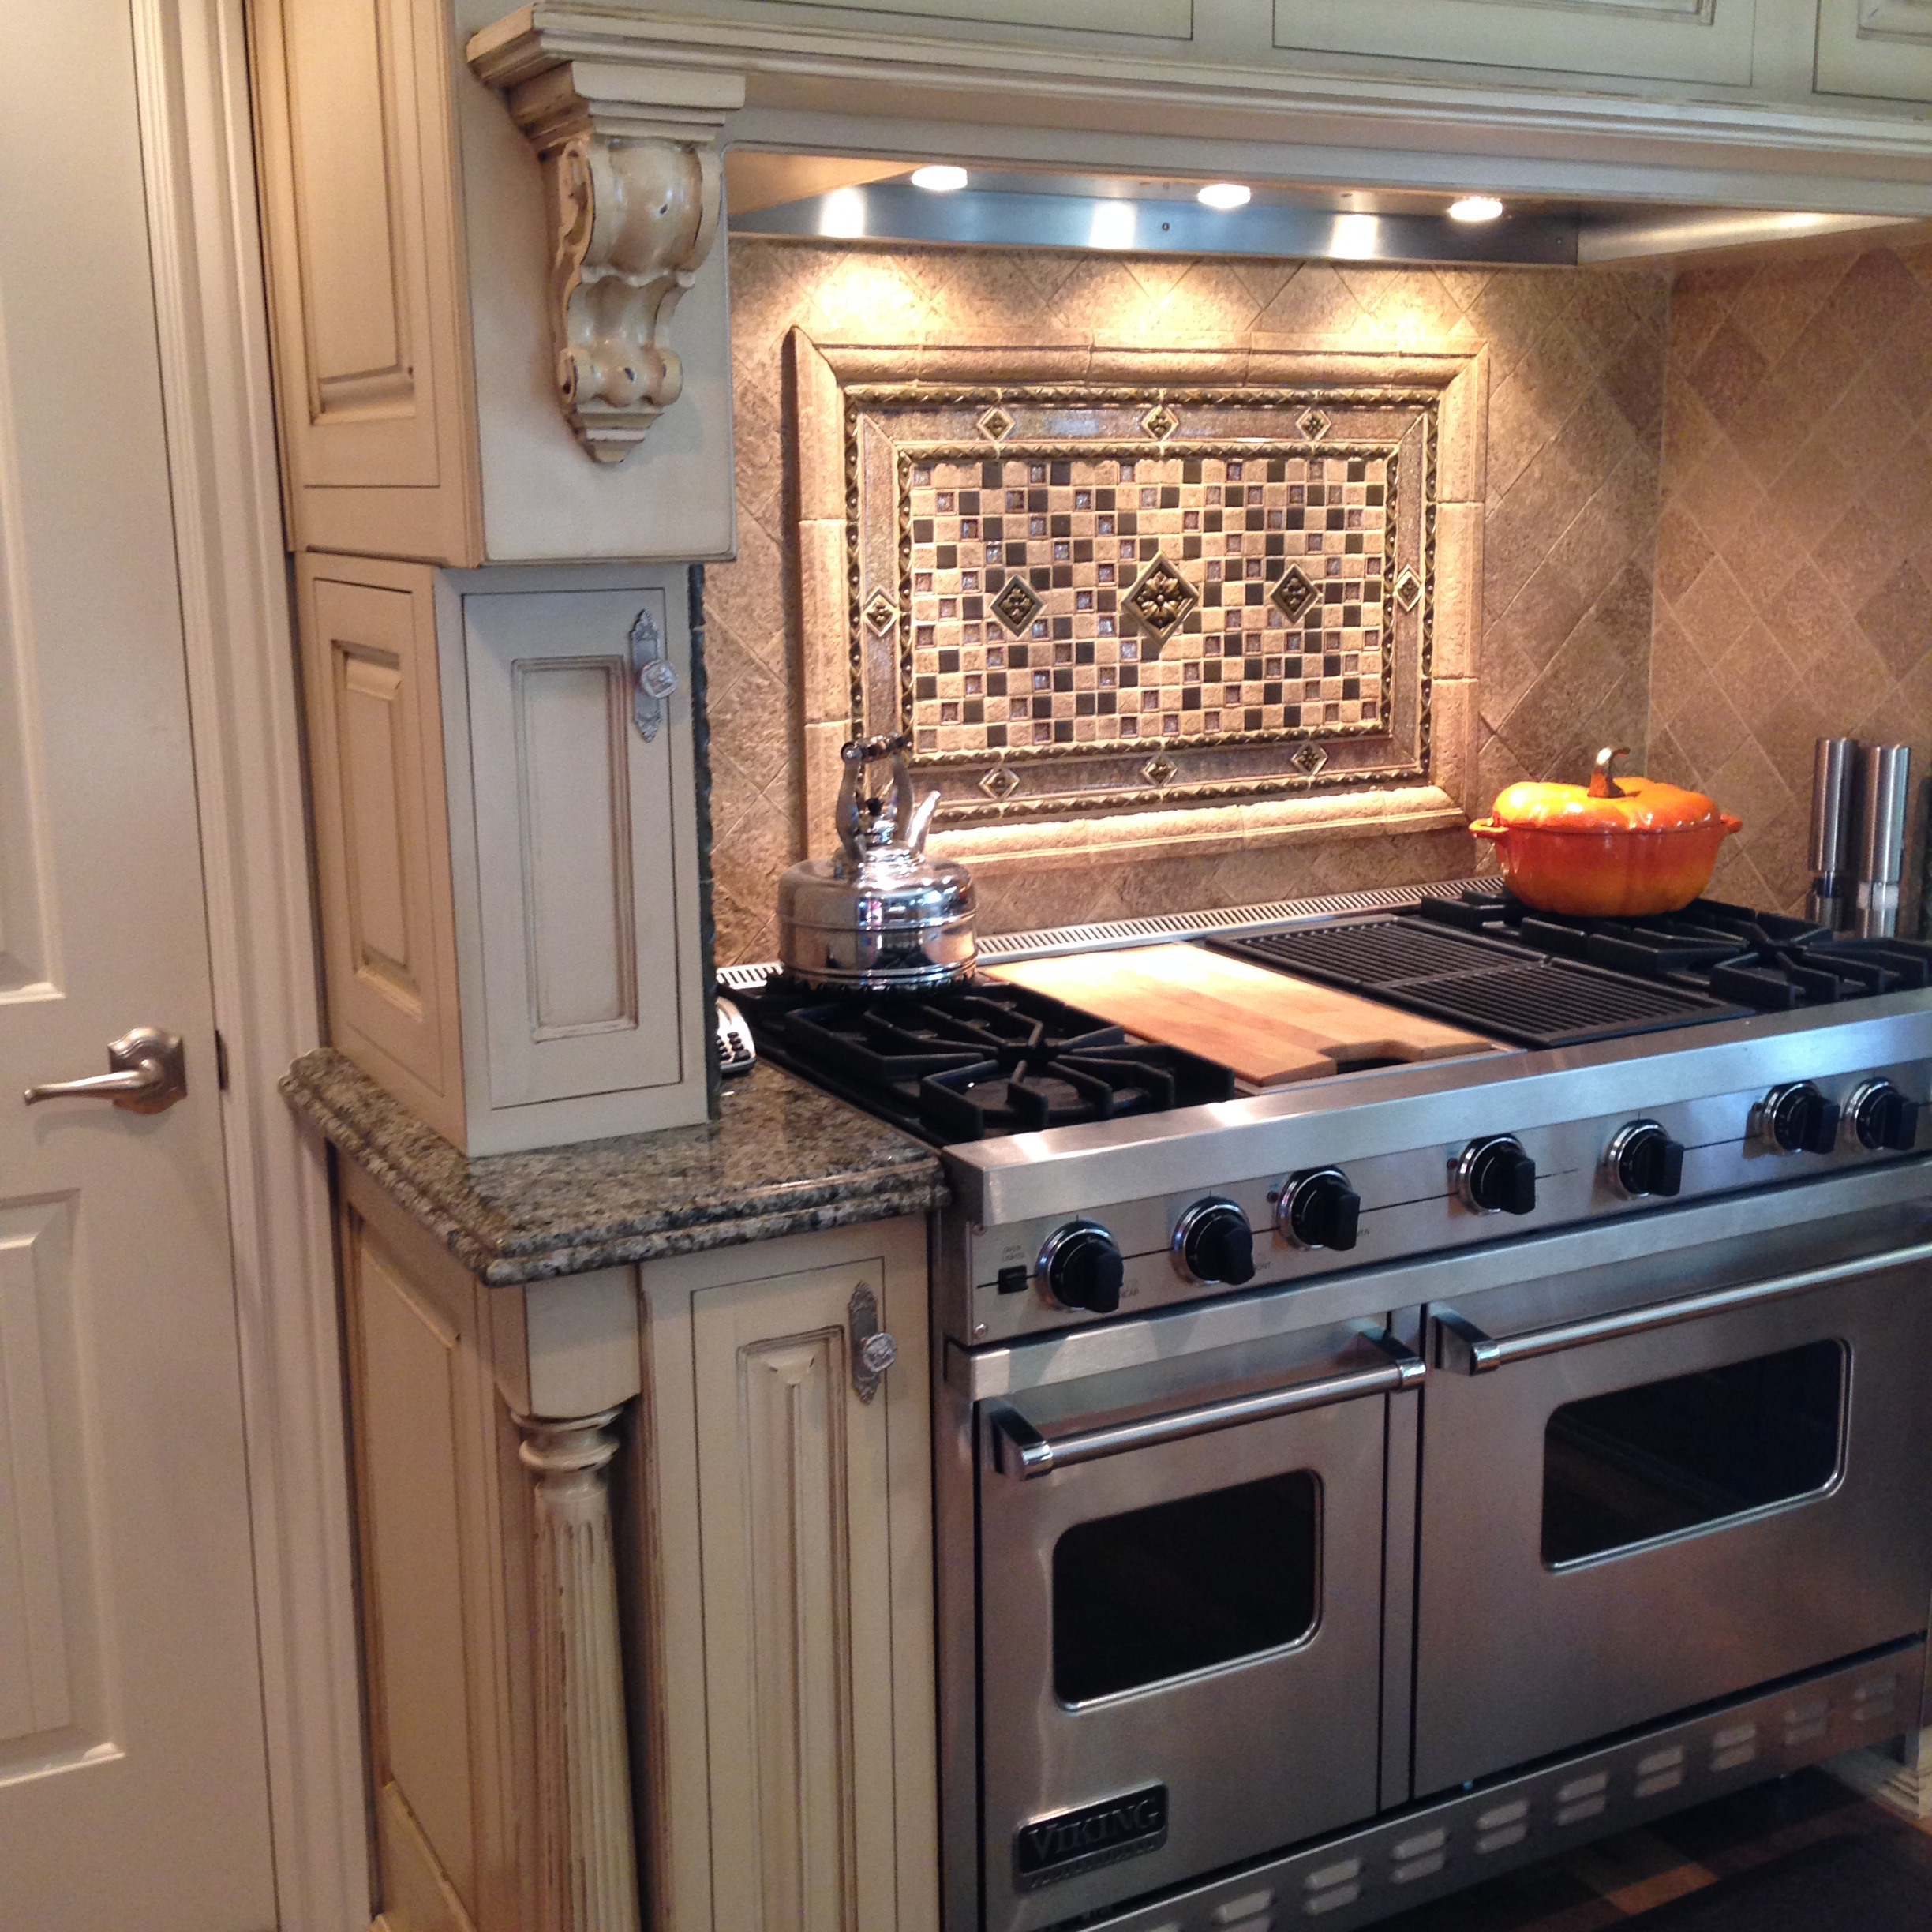 Painted and Glazed Cabinetry